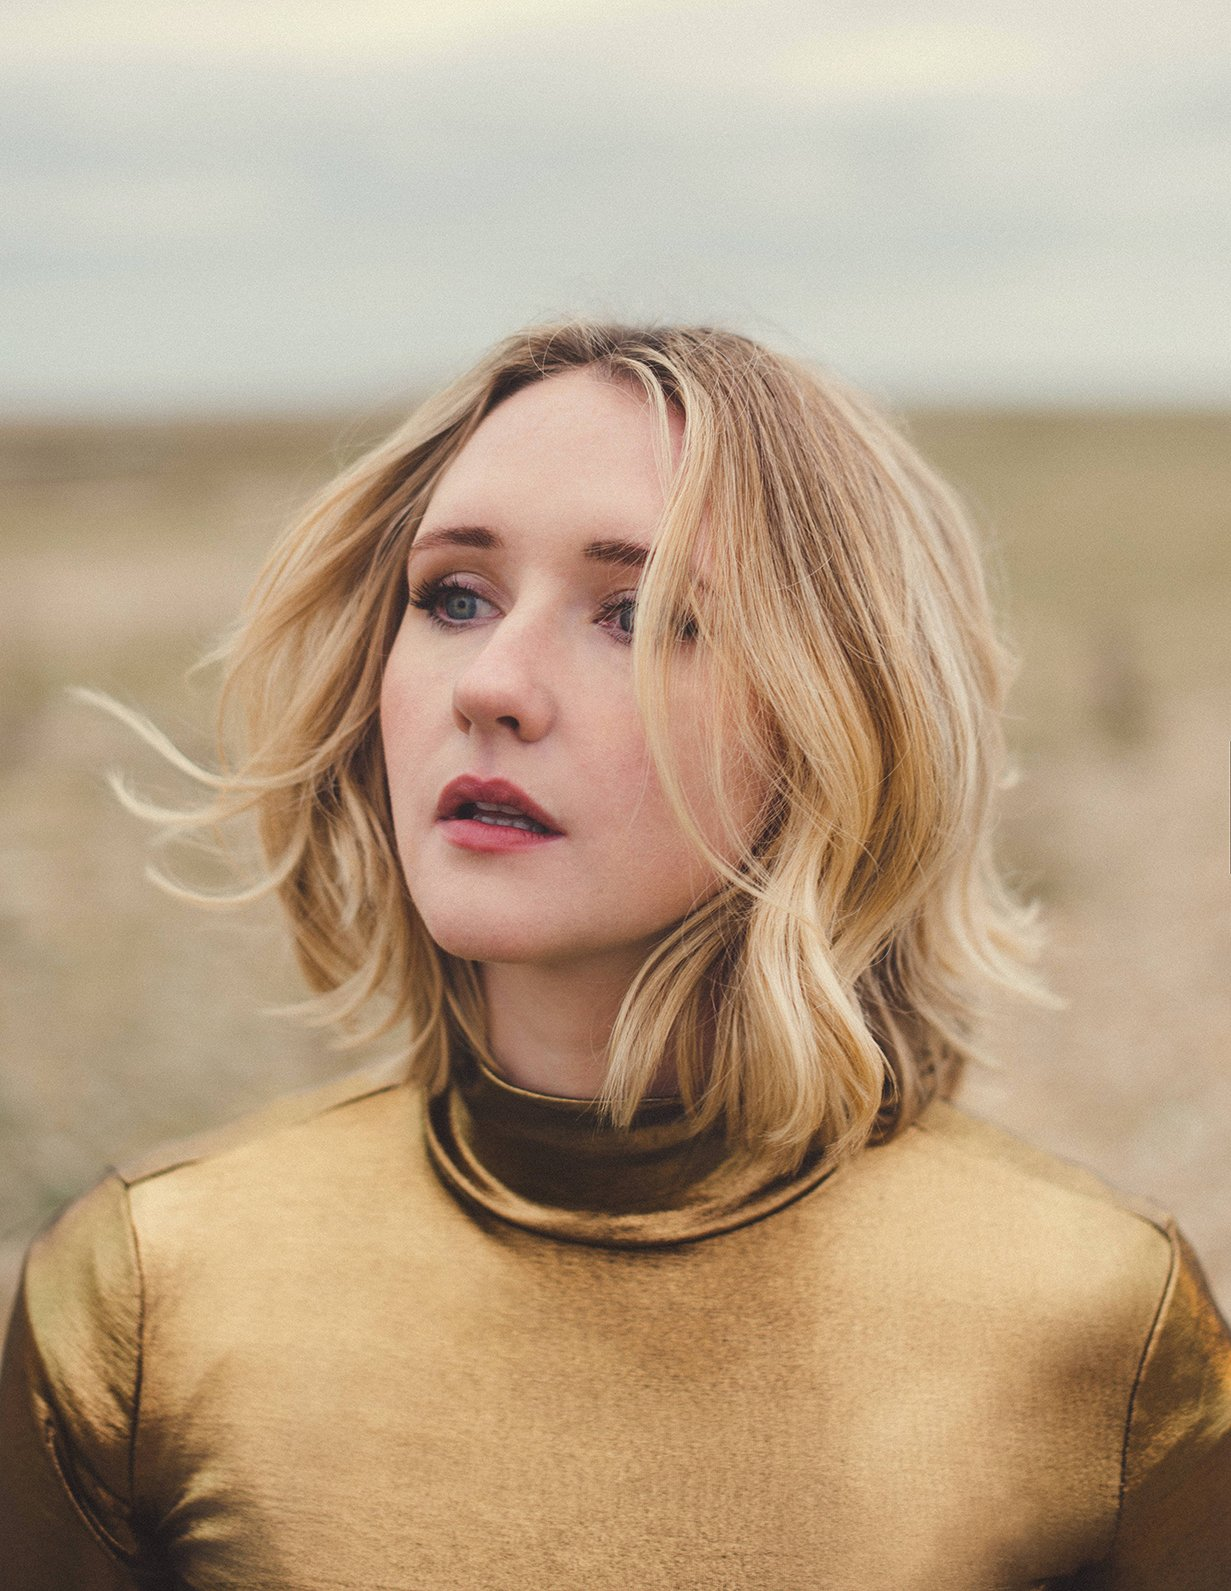 LILLA VARGEN reveals new song 'Cold' - Listen Now